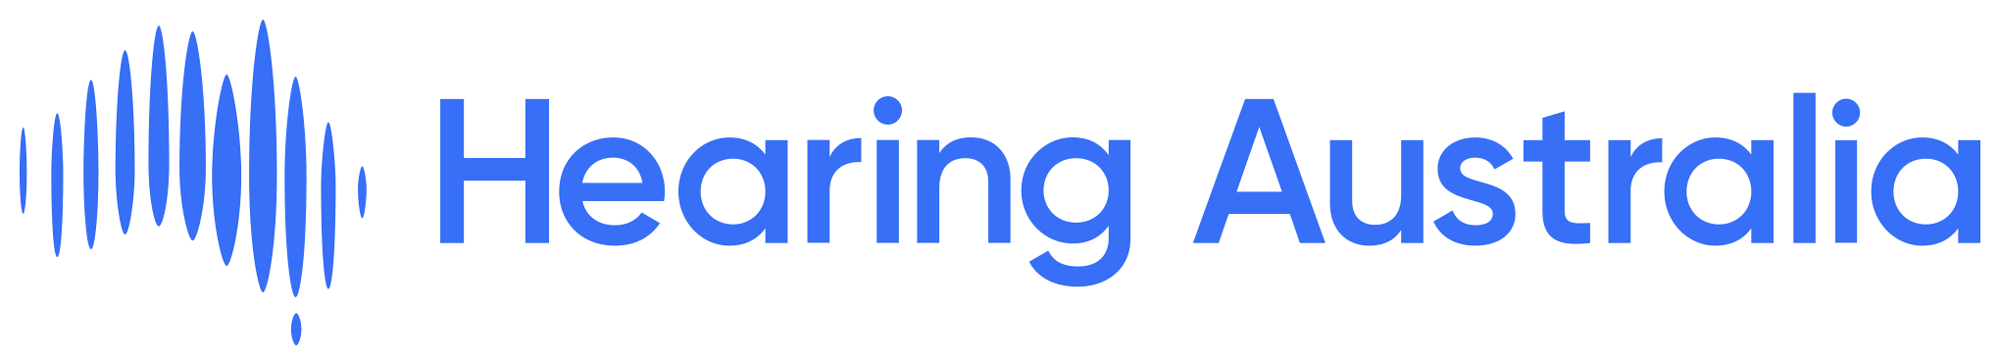 New Logo and Identity for Hearing Australia by Landor